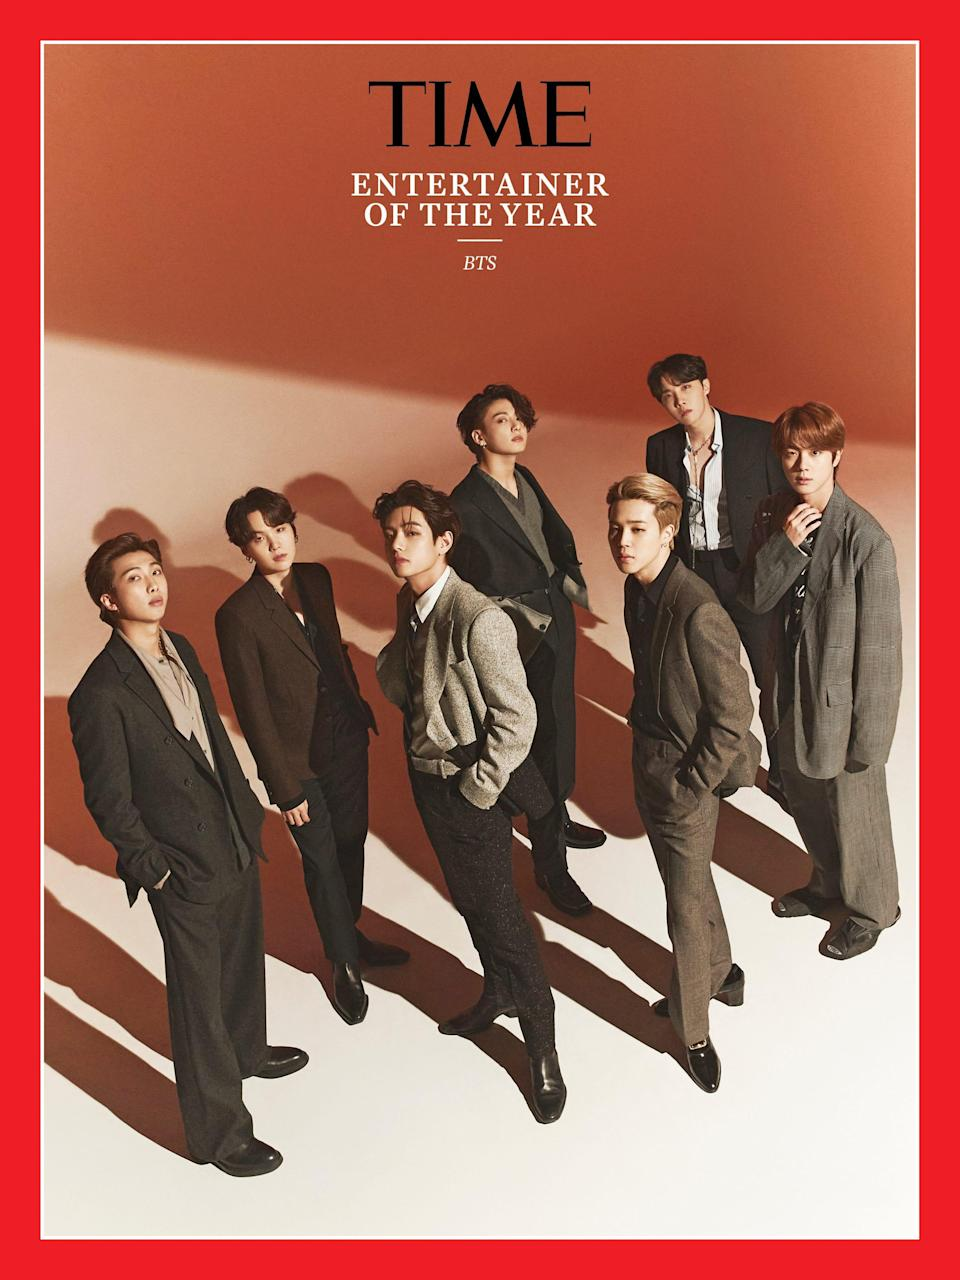 Time magazine's 2020 Entertainer of the Year cover featuring BTS.